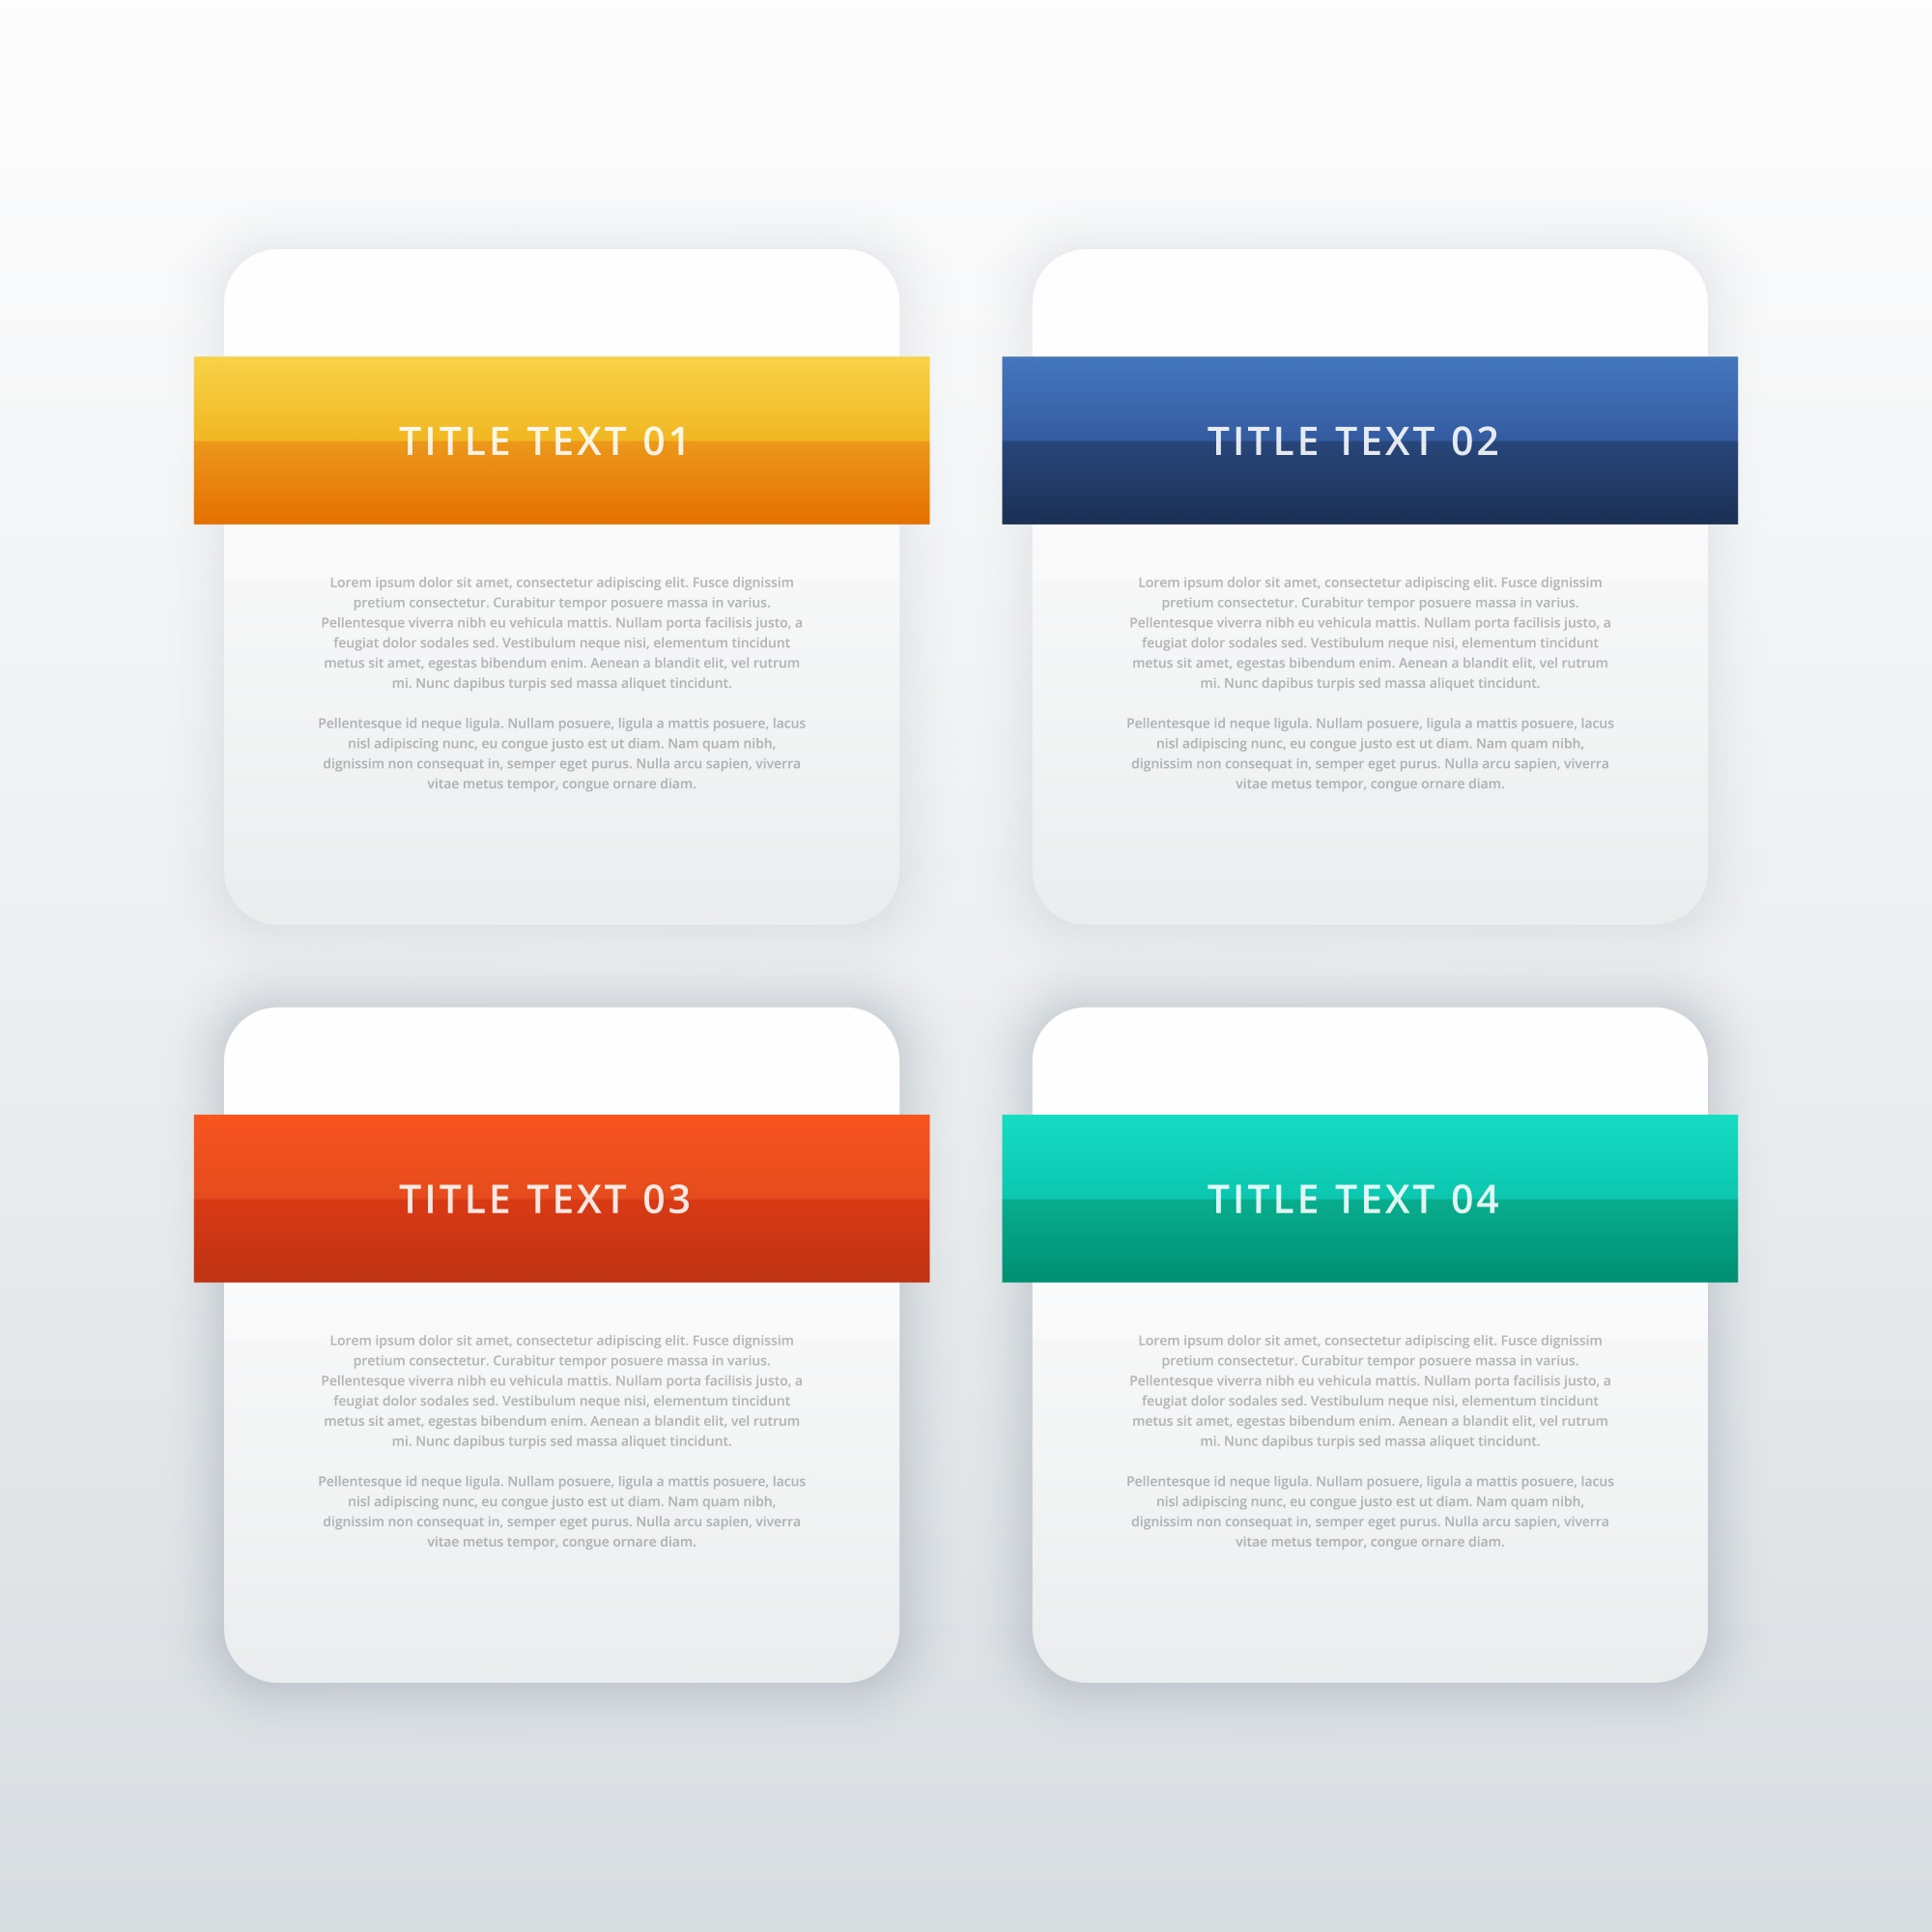 Four modern web banners or infographic template